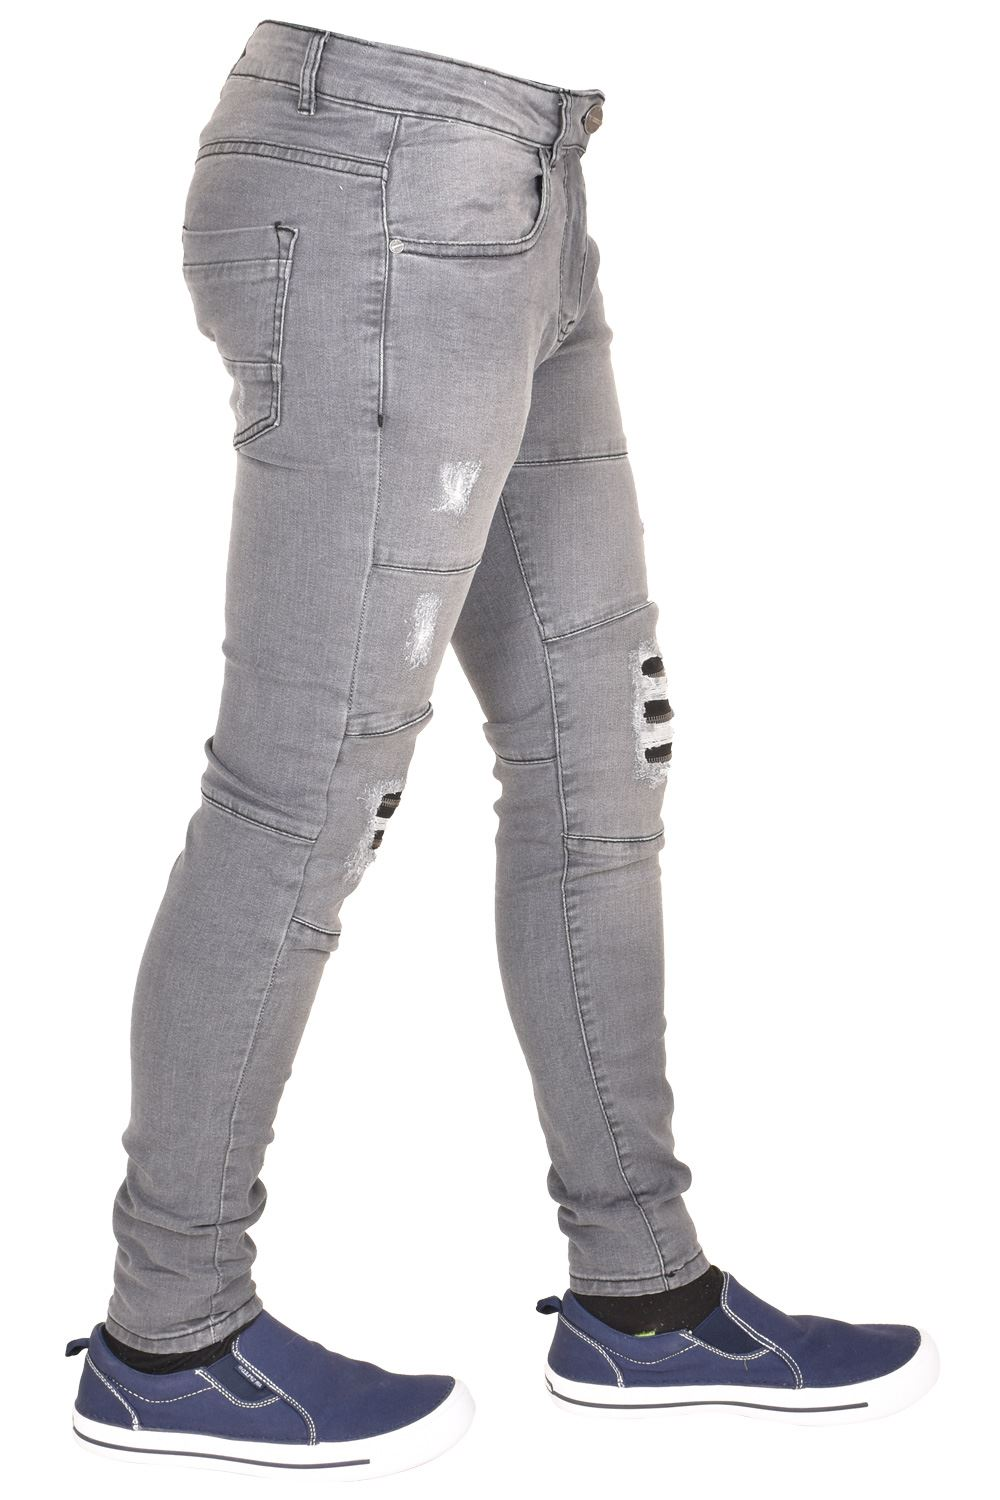 Enzo-Mens-Ripped-Jeans-Skinny-Slim-Fit-Denim-Pants-Casual-Trousers-Size-28-40 thumbnail 5